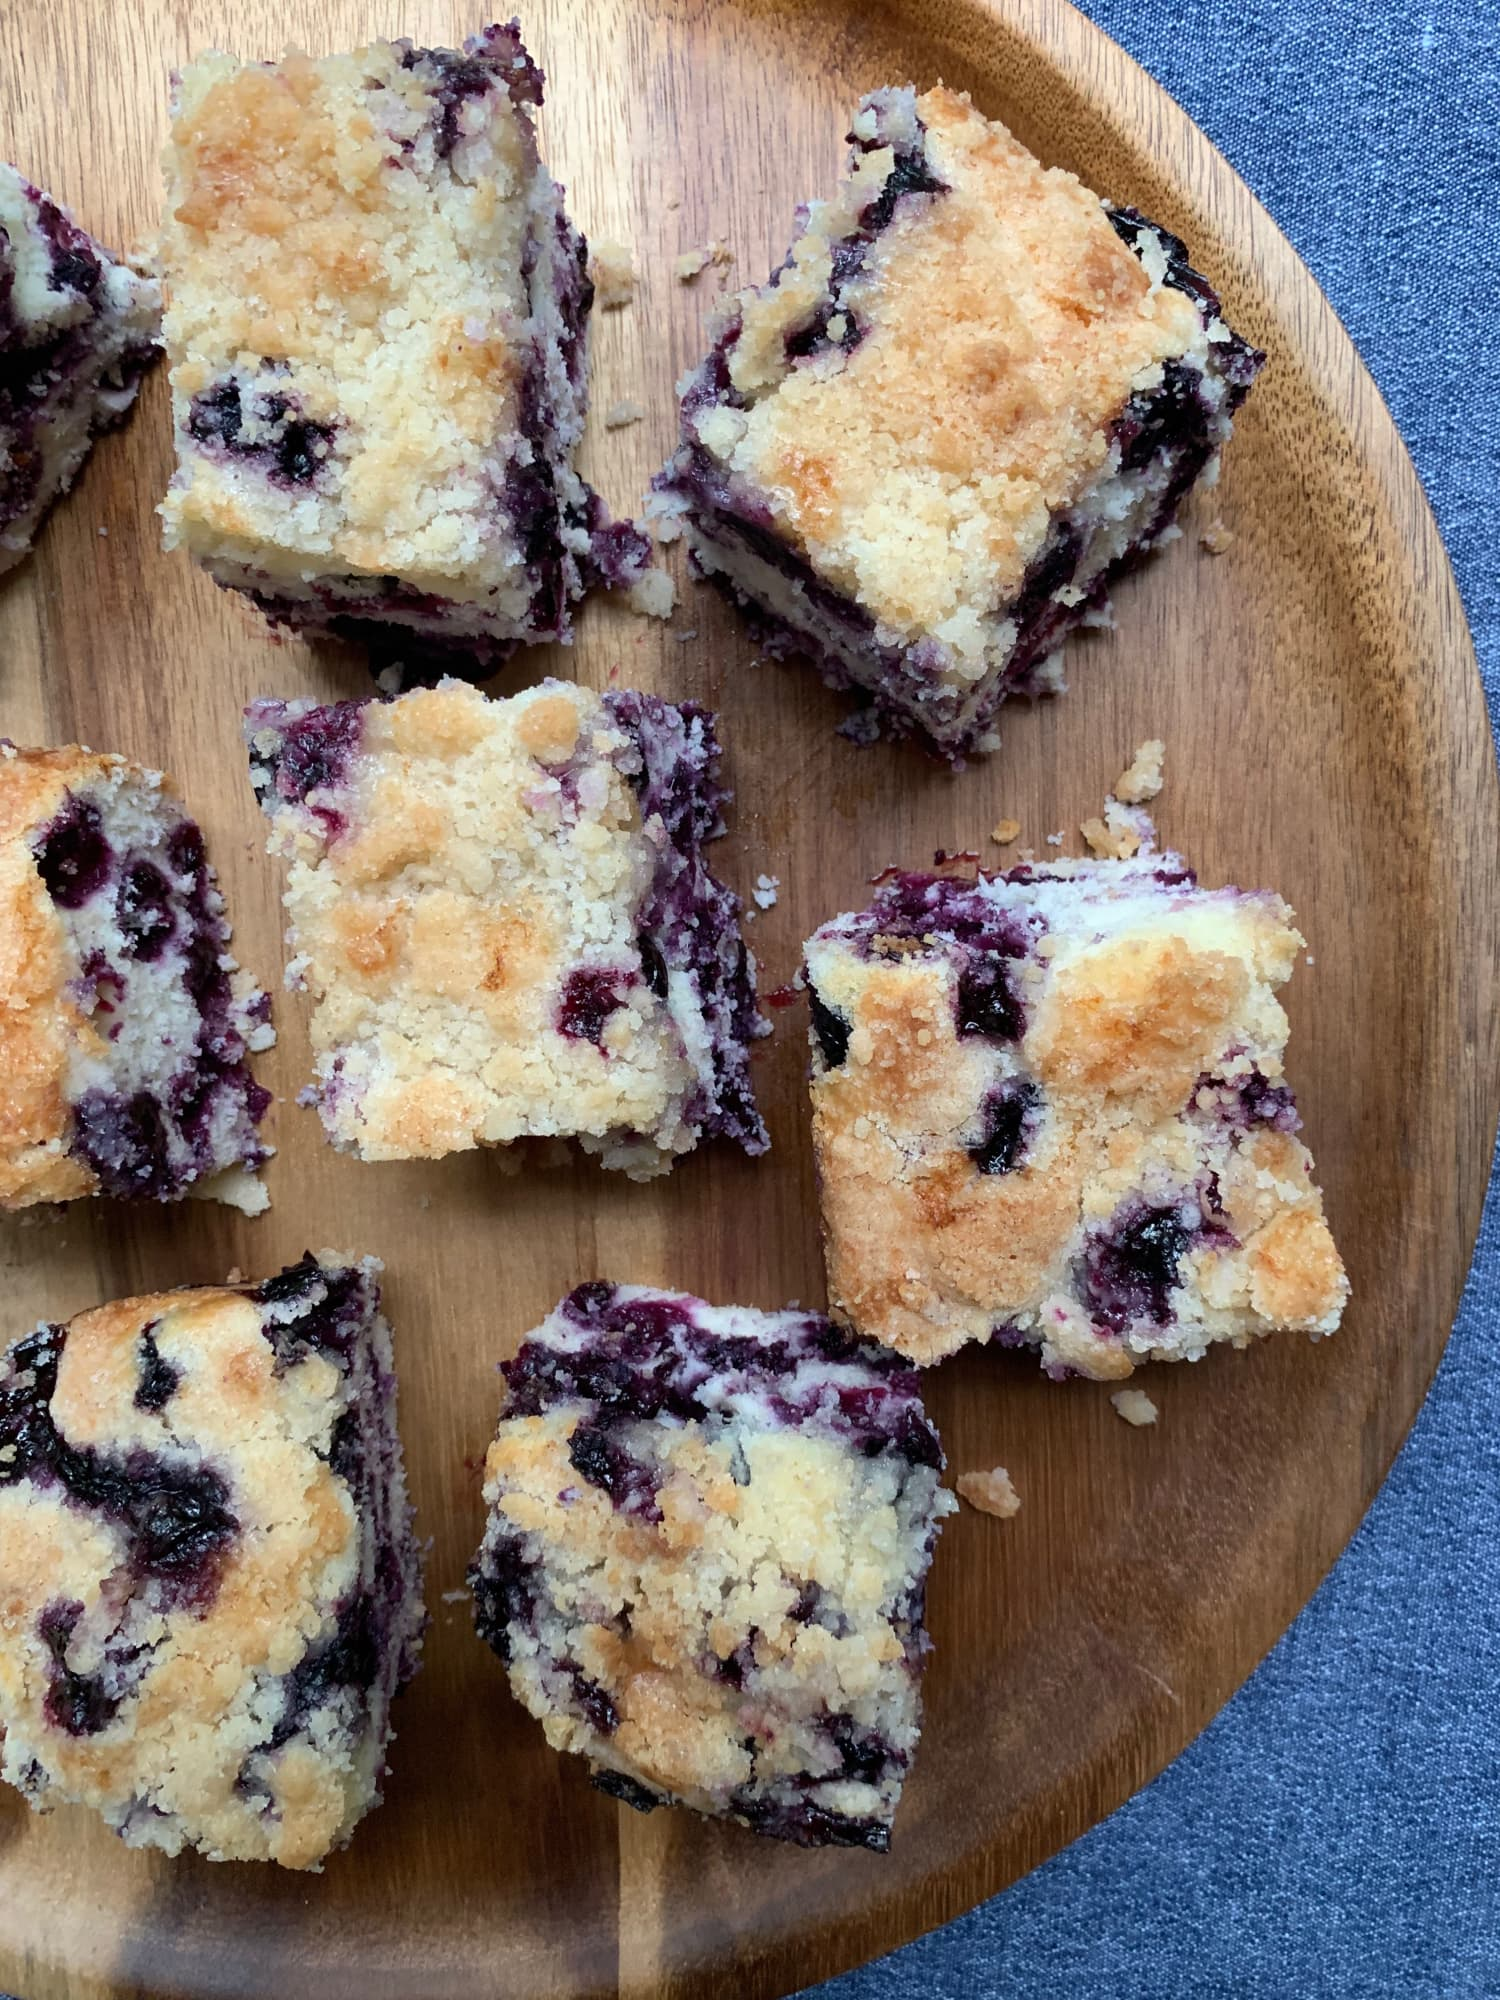 Alton Brown's Best Recipe Isn't a Crazy Hack — It's This Simple Blueberry Buckle